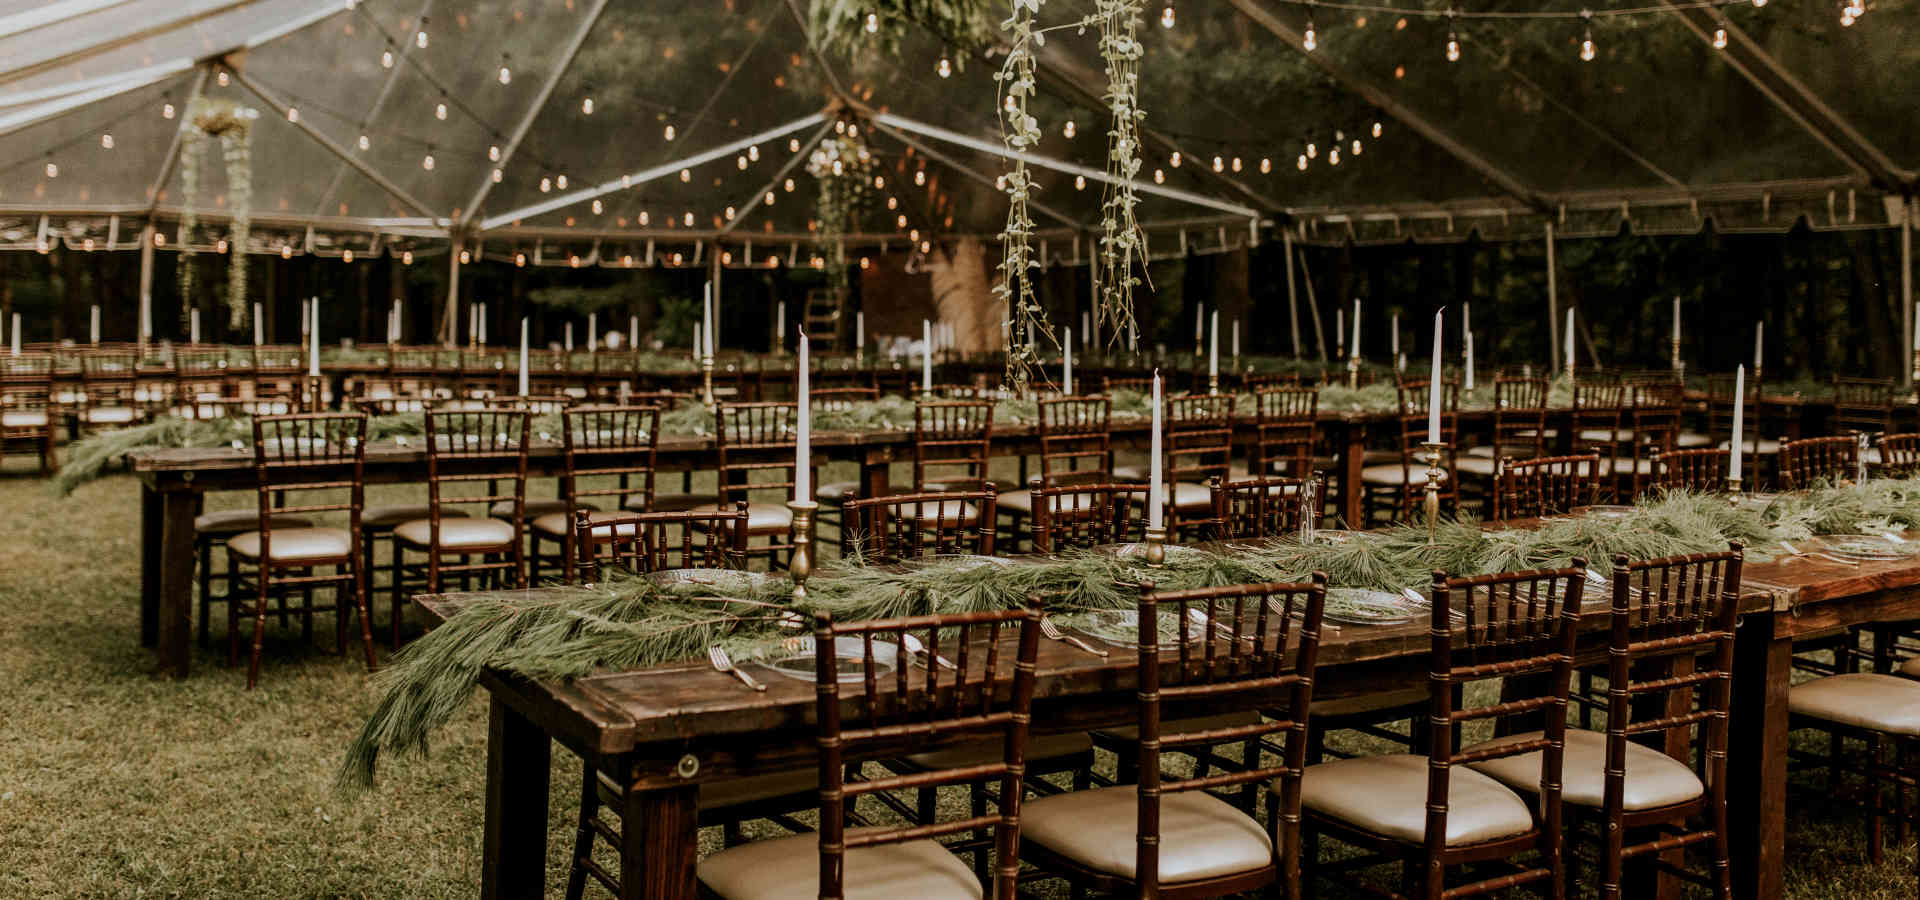 Tent rentals in West Michigan